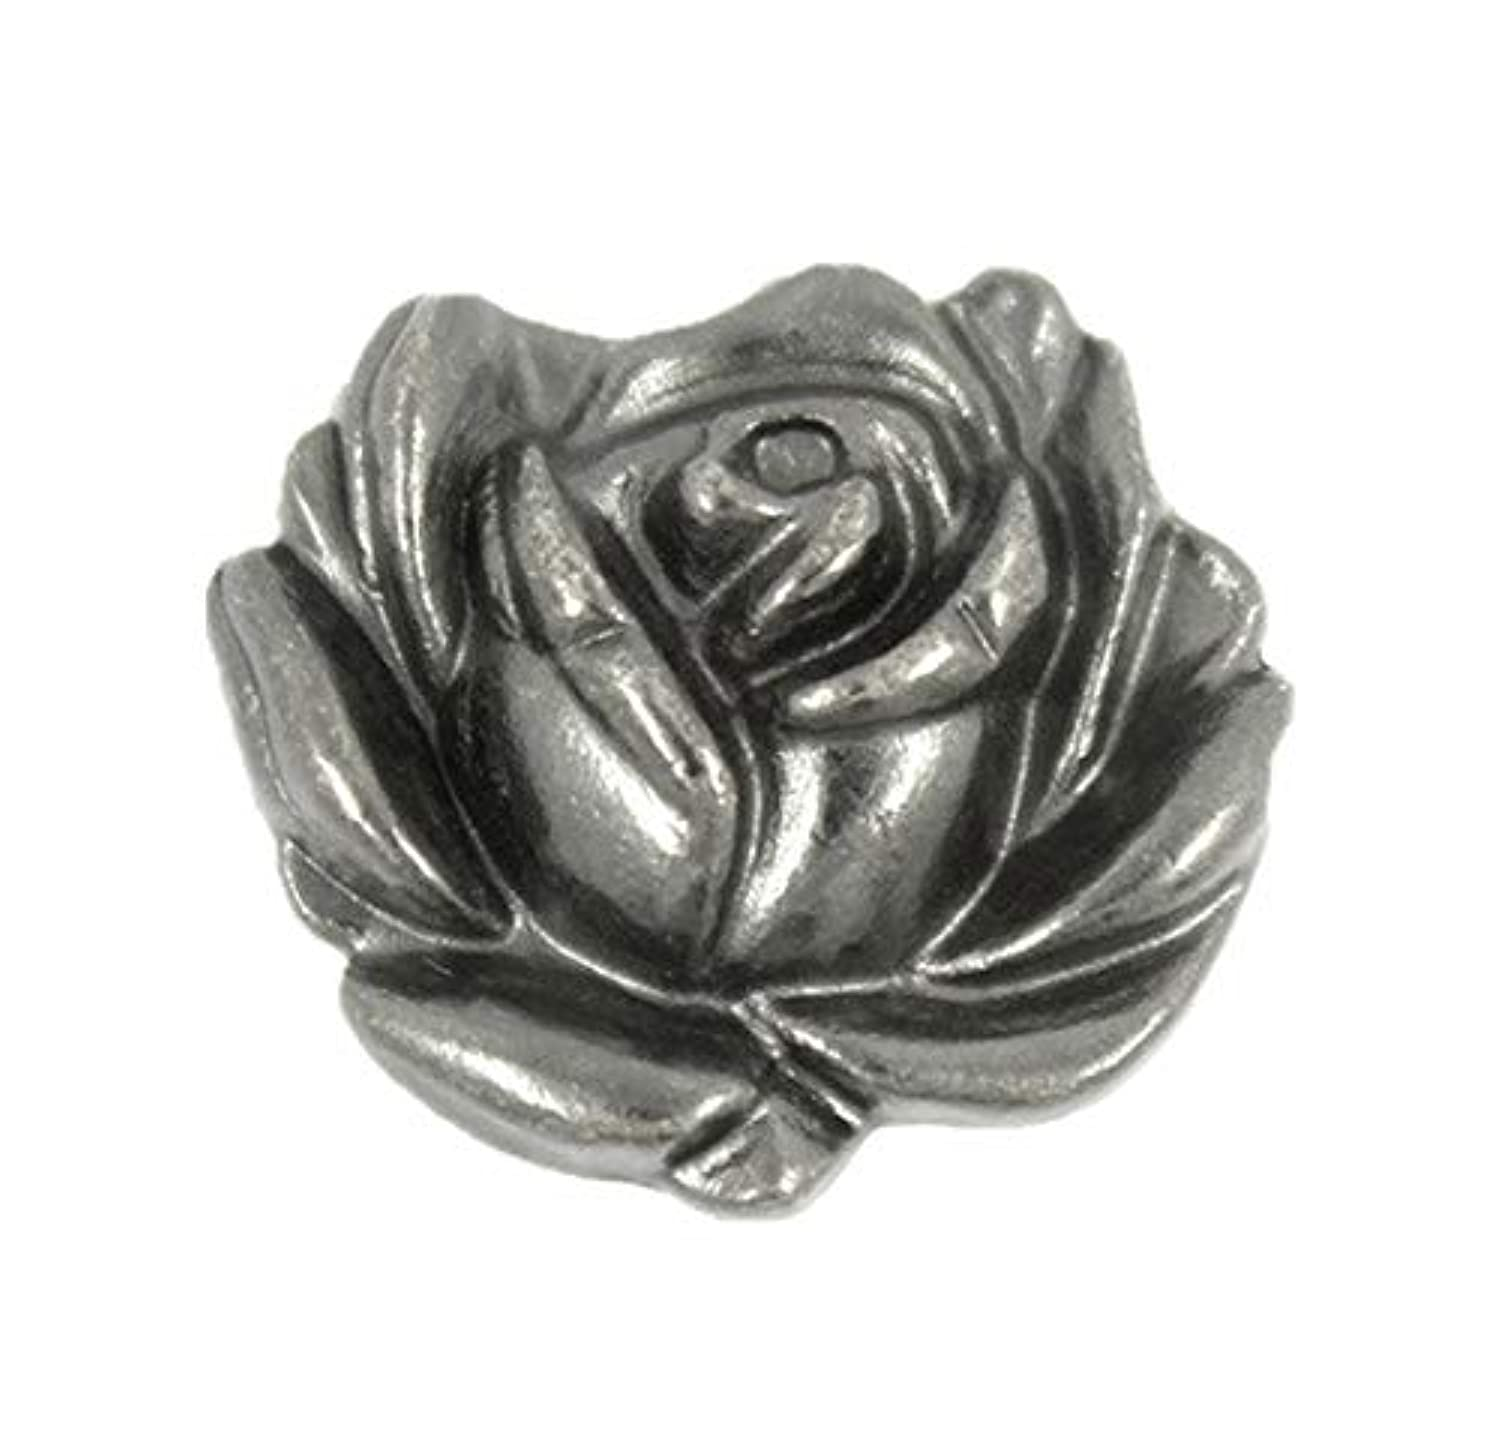 Bezelry 12 Pieces Rose in Full Bloom Gray Silver Metal Shank Buttons. 20mm (3/4 inch)